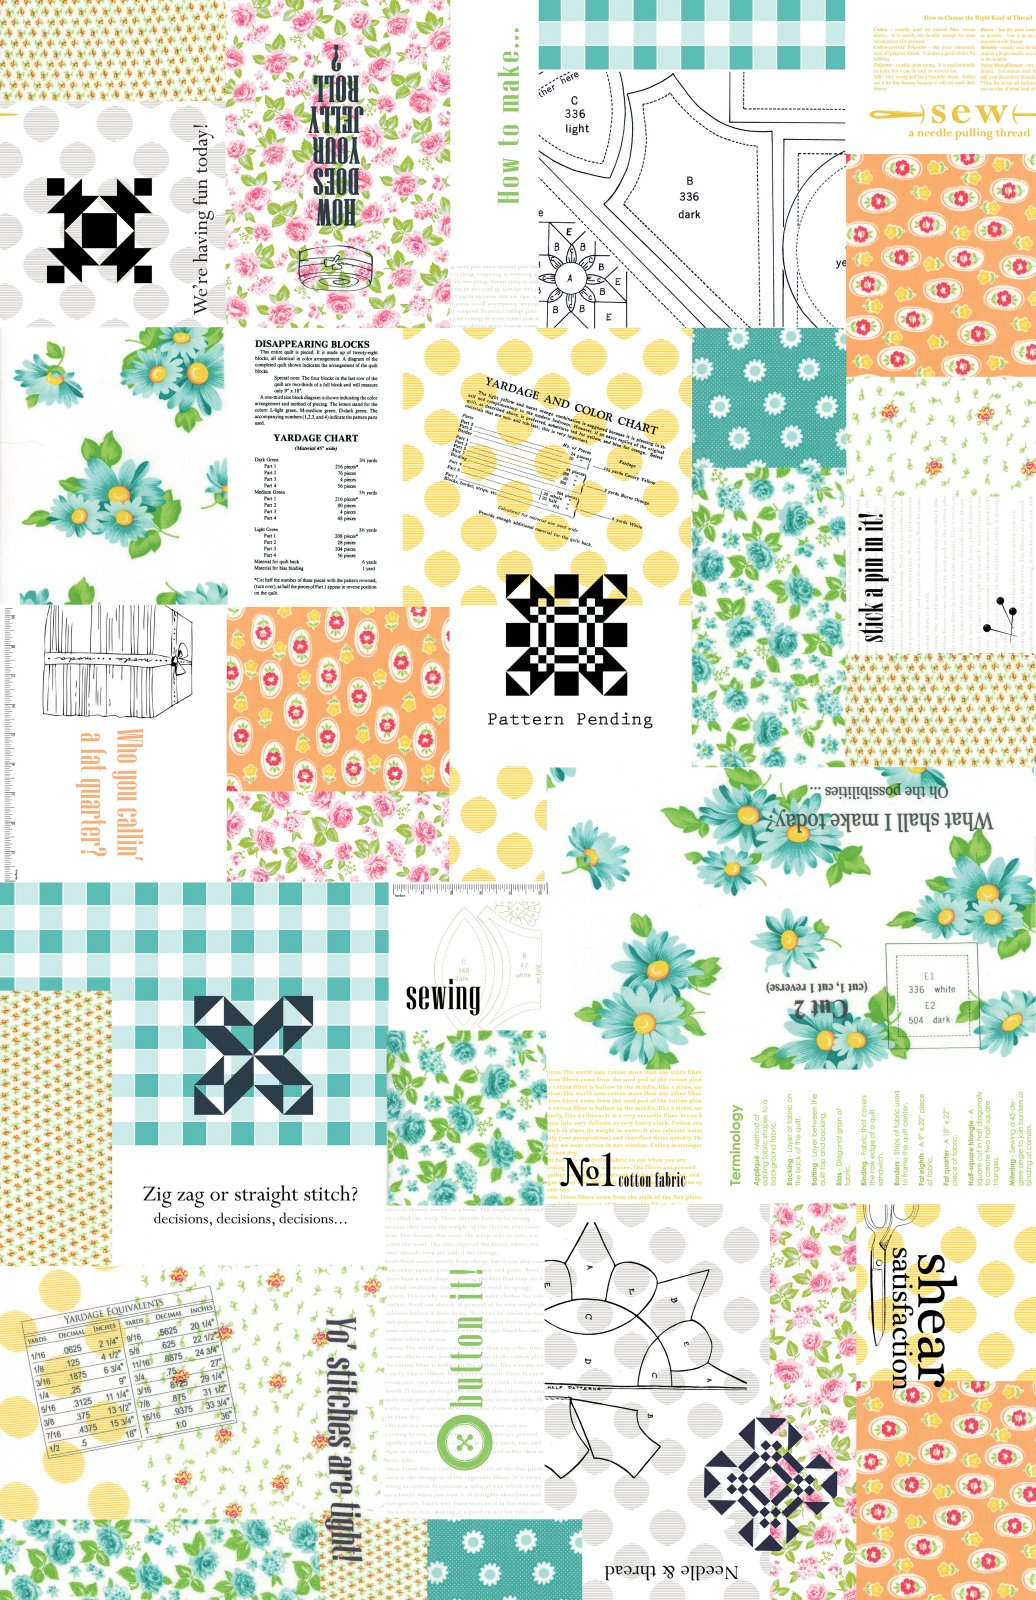 Sew and Sew Patchwork Fruity 33180 11-  Chloe's Closet